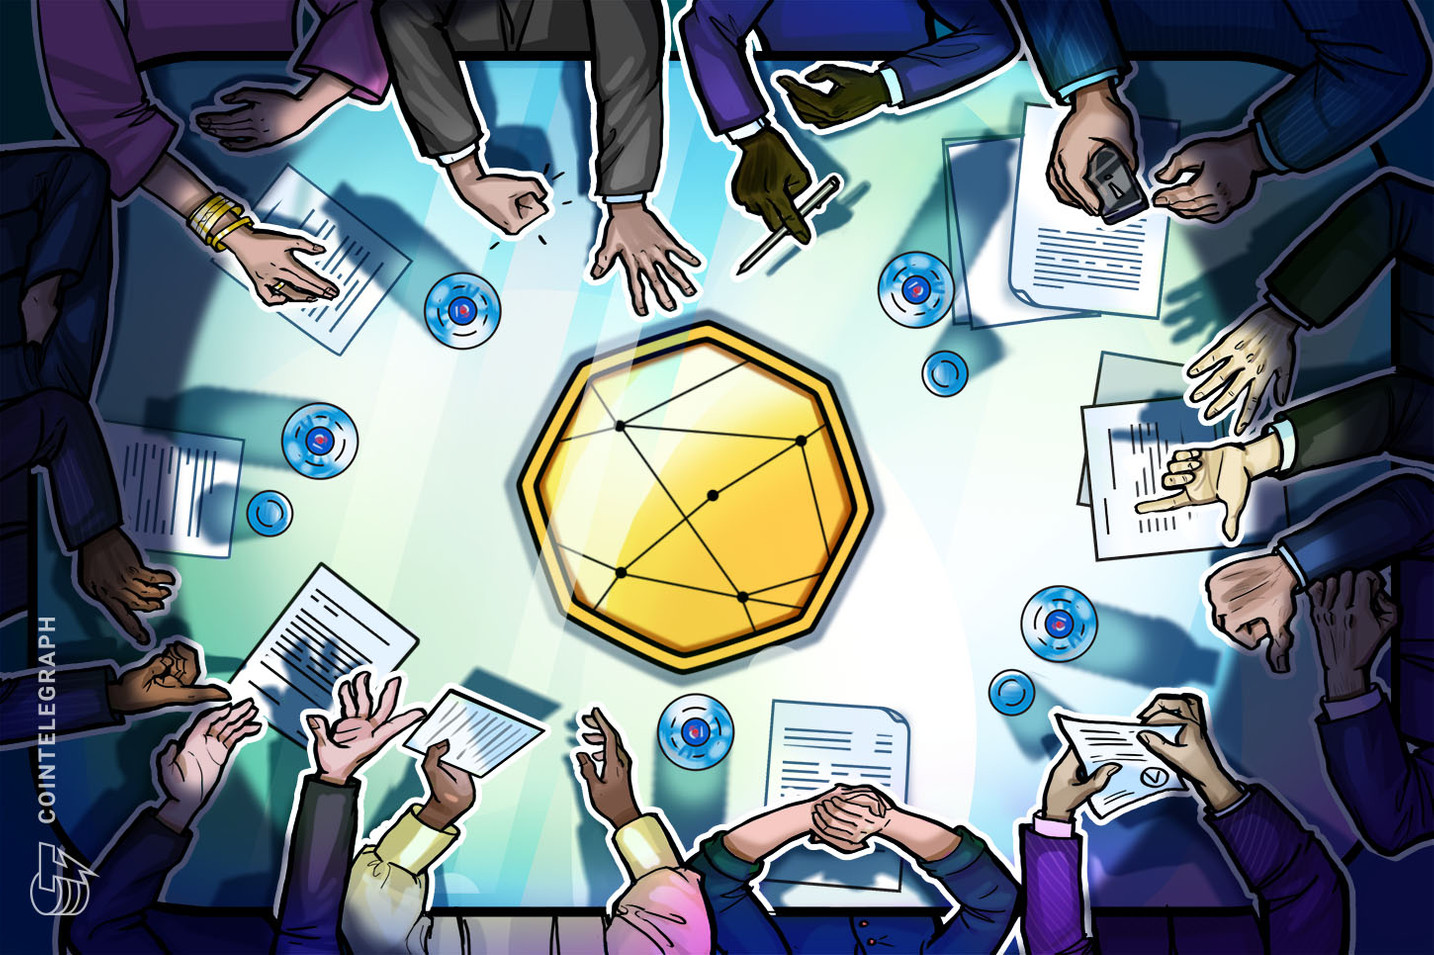 EAEU unlikely to find common ground on crypto regulation, official says